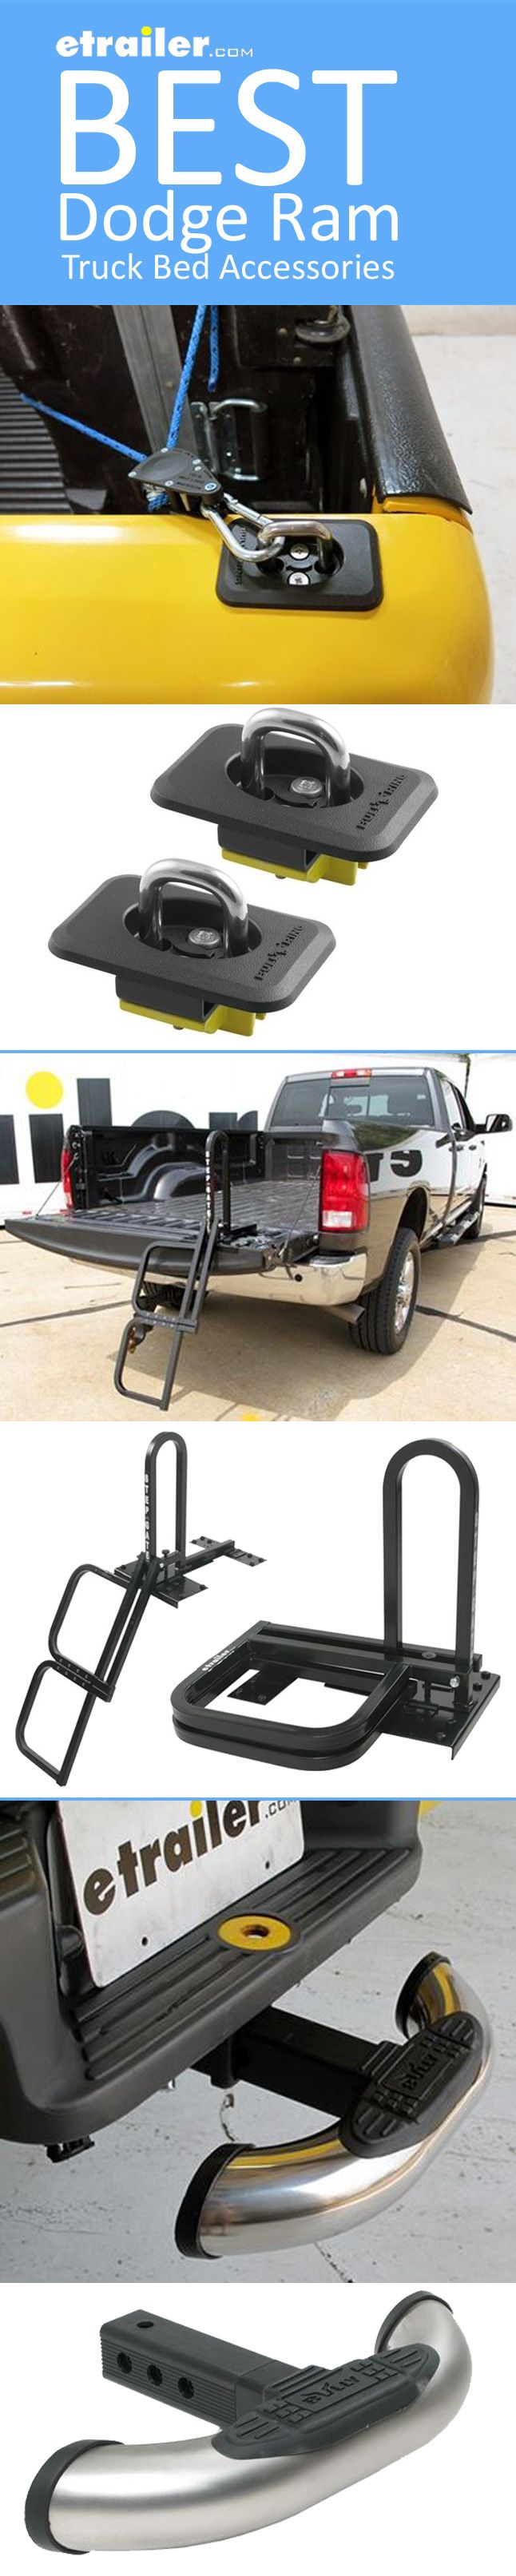 We have the list of the Best Ram Truck Bed Accessories! Tie Down Anchors to secure gear in your truck bed, Tailgate or Trailer Hitch Step to easily access your truck bed, LED Light Strip,  Cargo Control Bar and more. This list has everything you need for your truck bed!